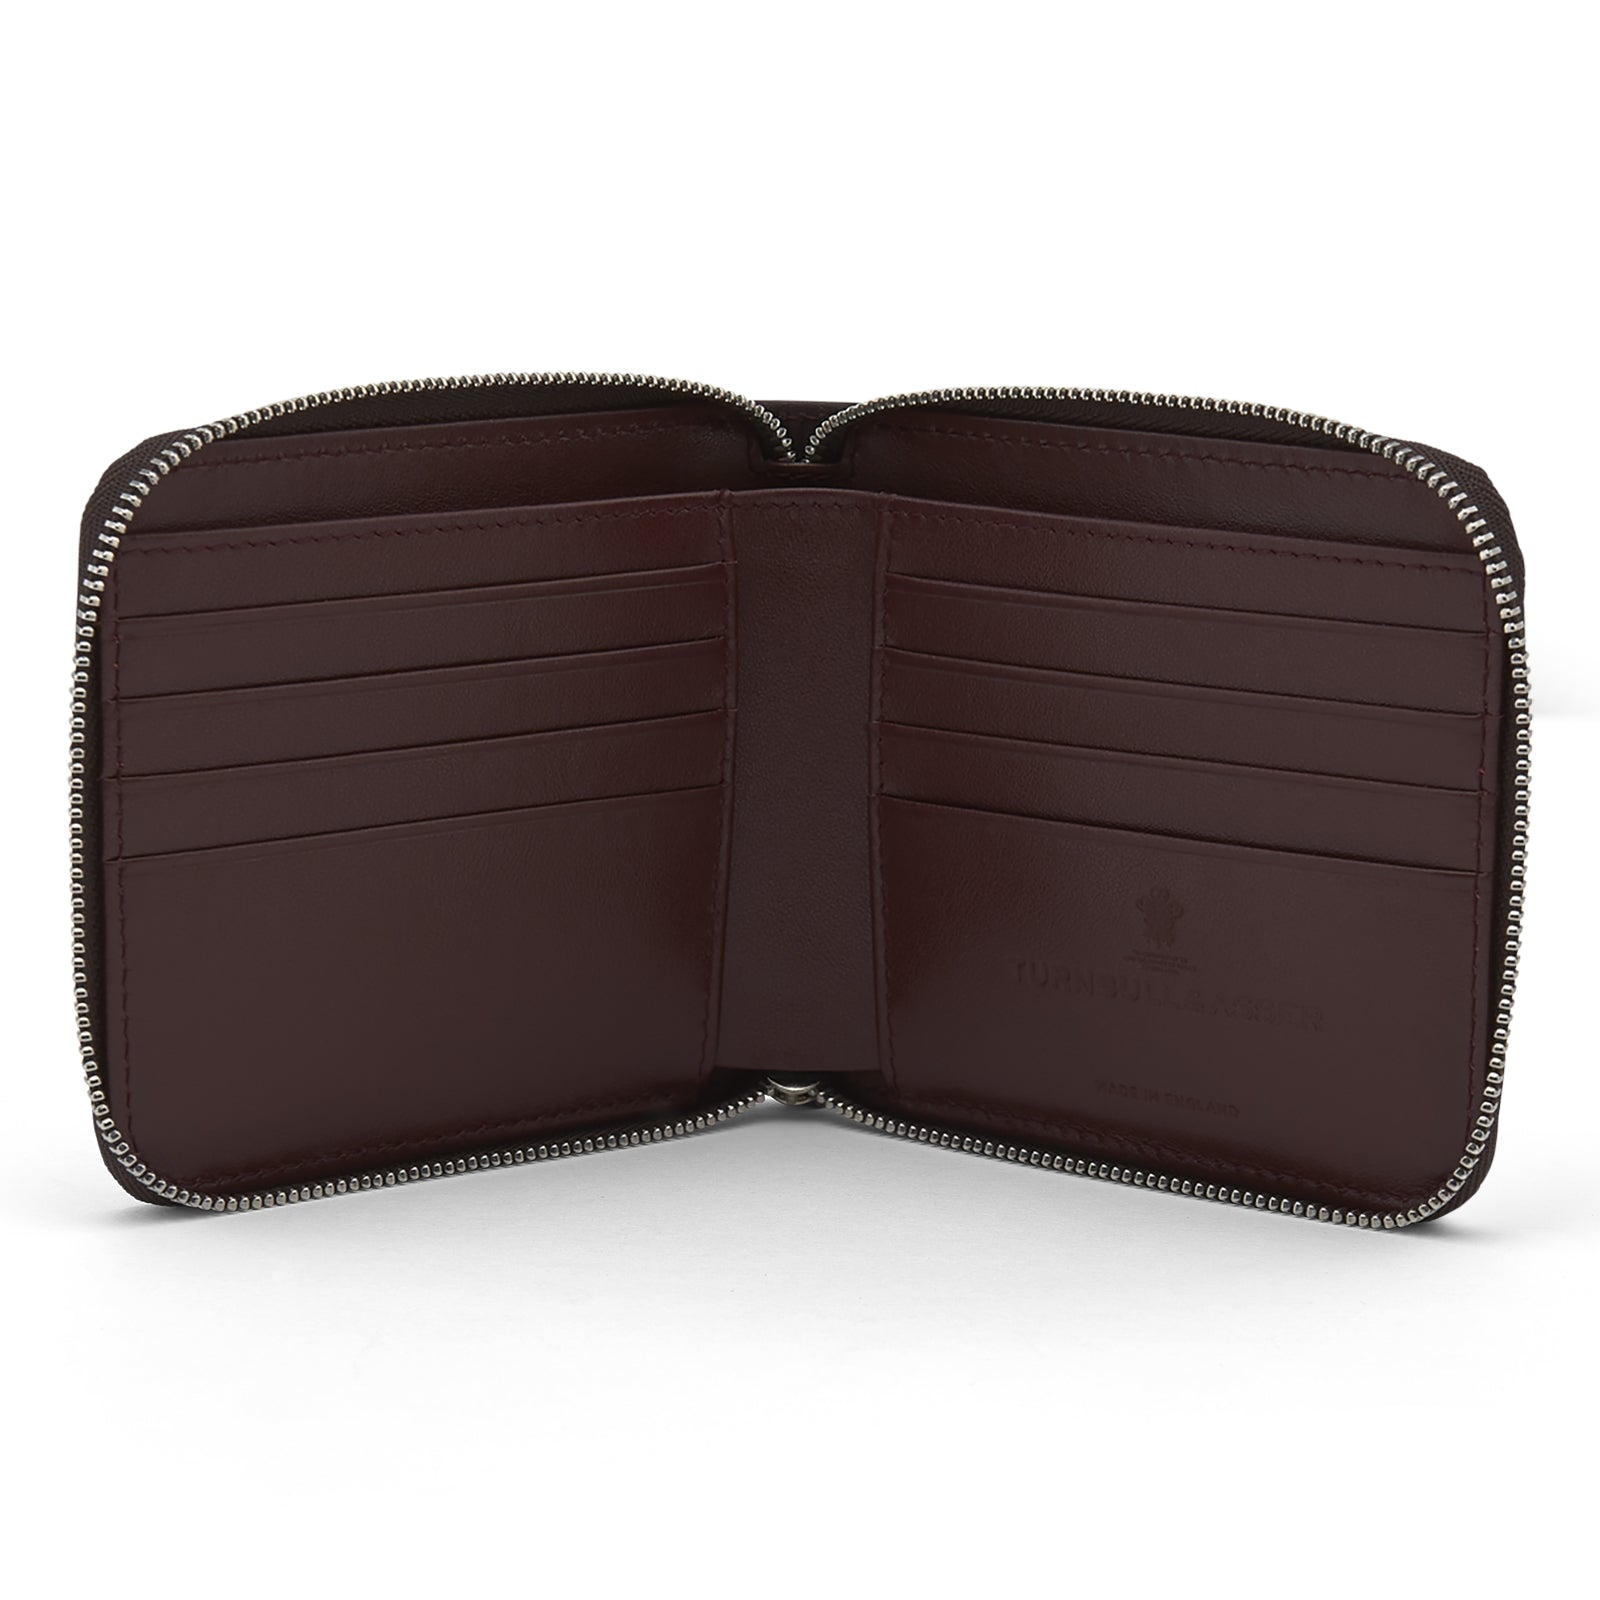 Violla Leather 8 C/C Zipped Wallet